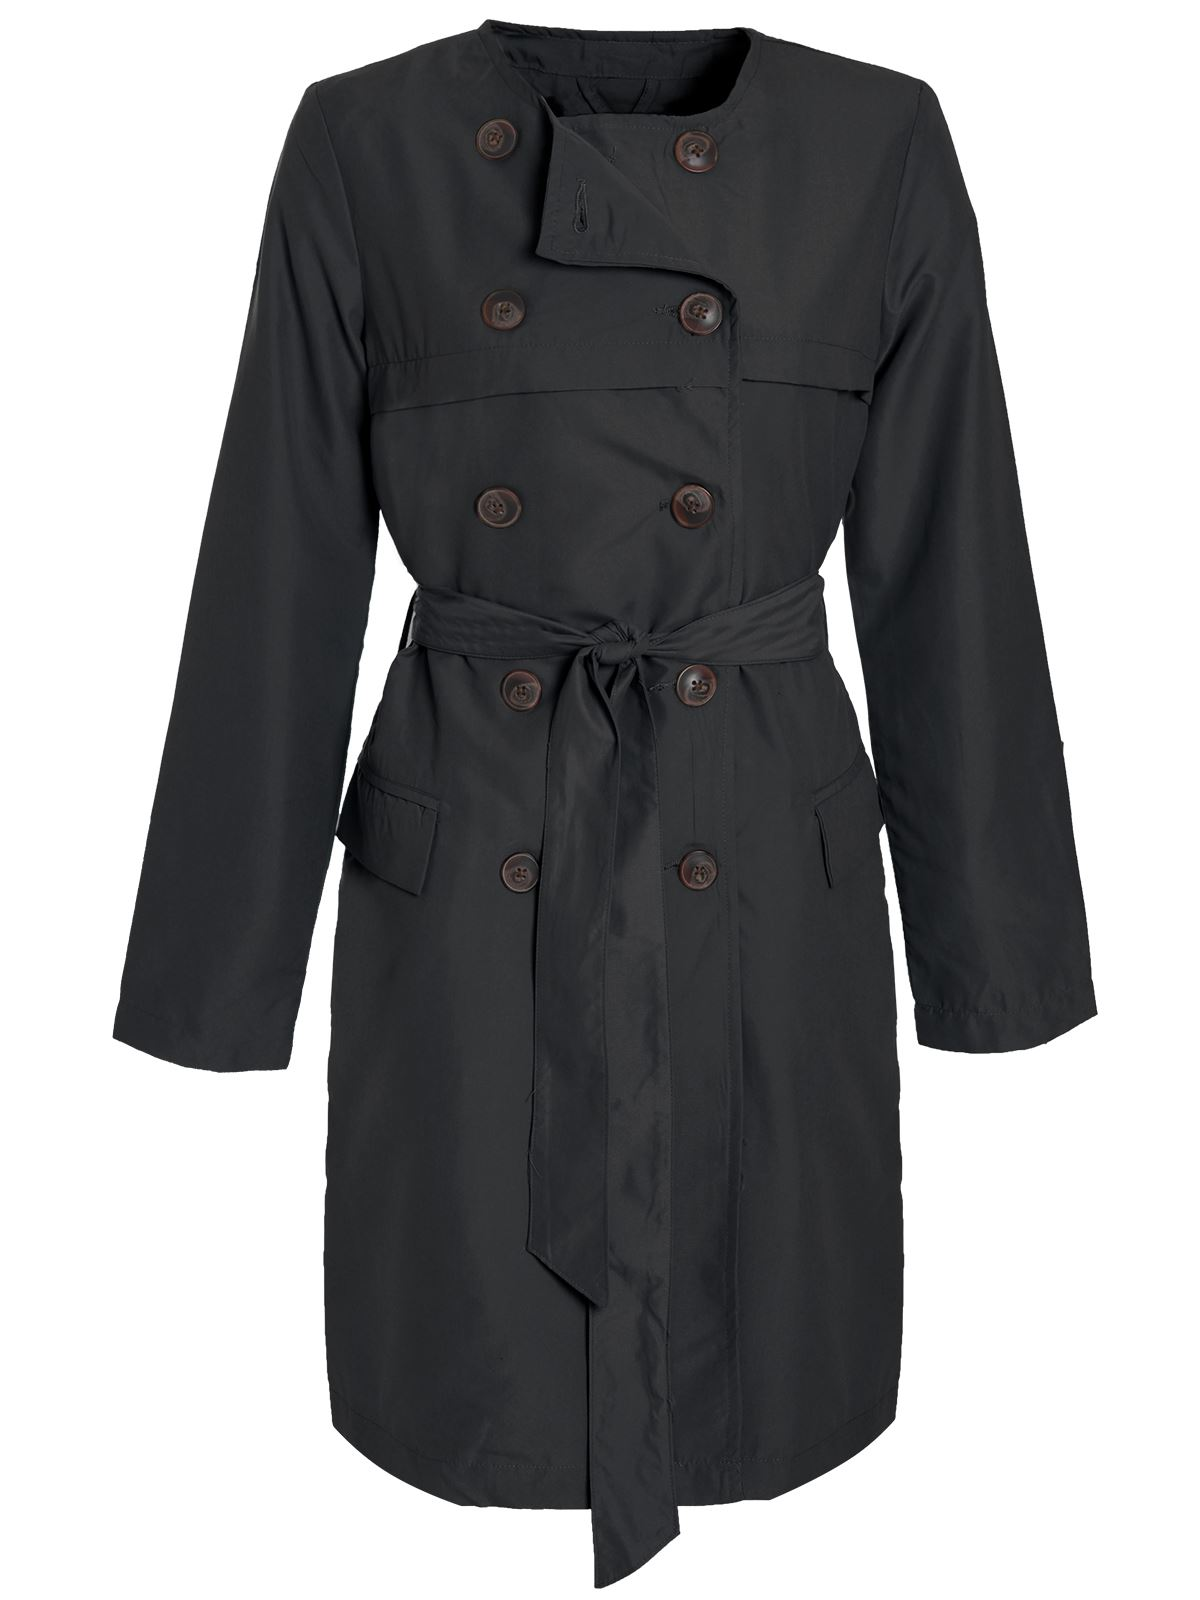 Womens-Ladies-Trench-Mac-Jacket-Microfibre-Double-Breasted-Tie-Belted-Coat